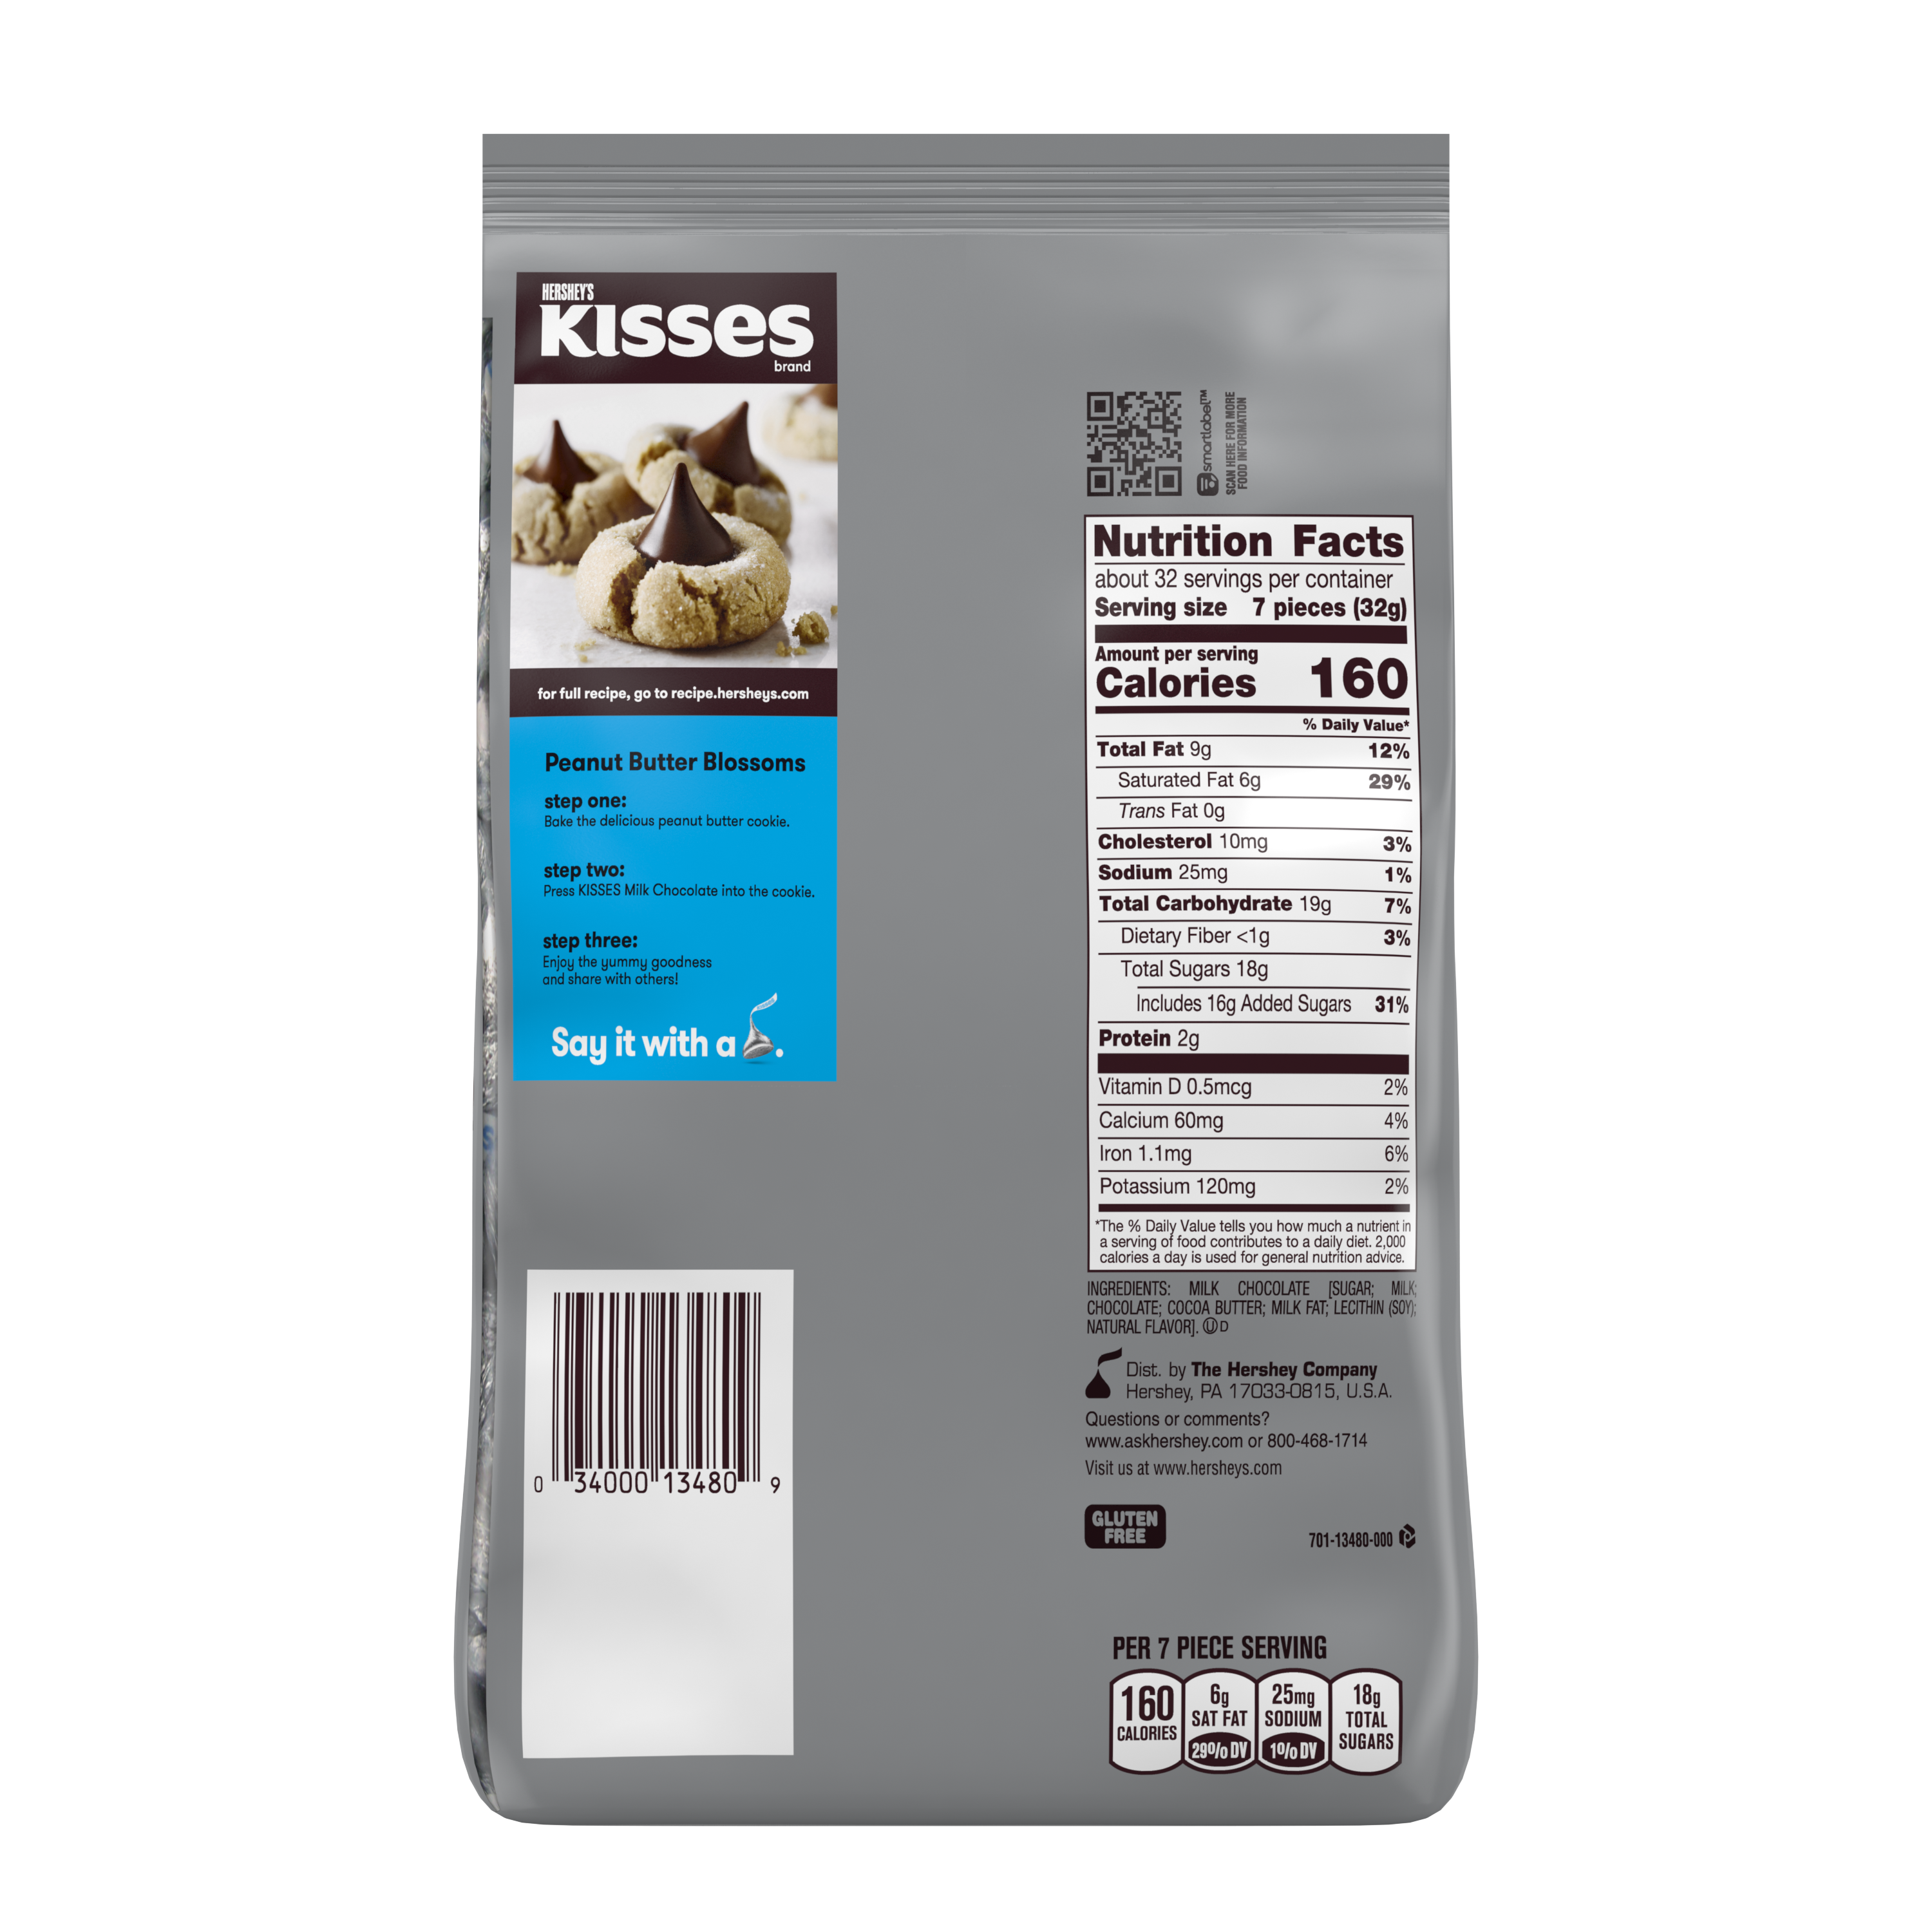 HERSHEY'S KISSES Milk Chocolate Candy, 35.8 oz pack - Back of Package